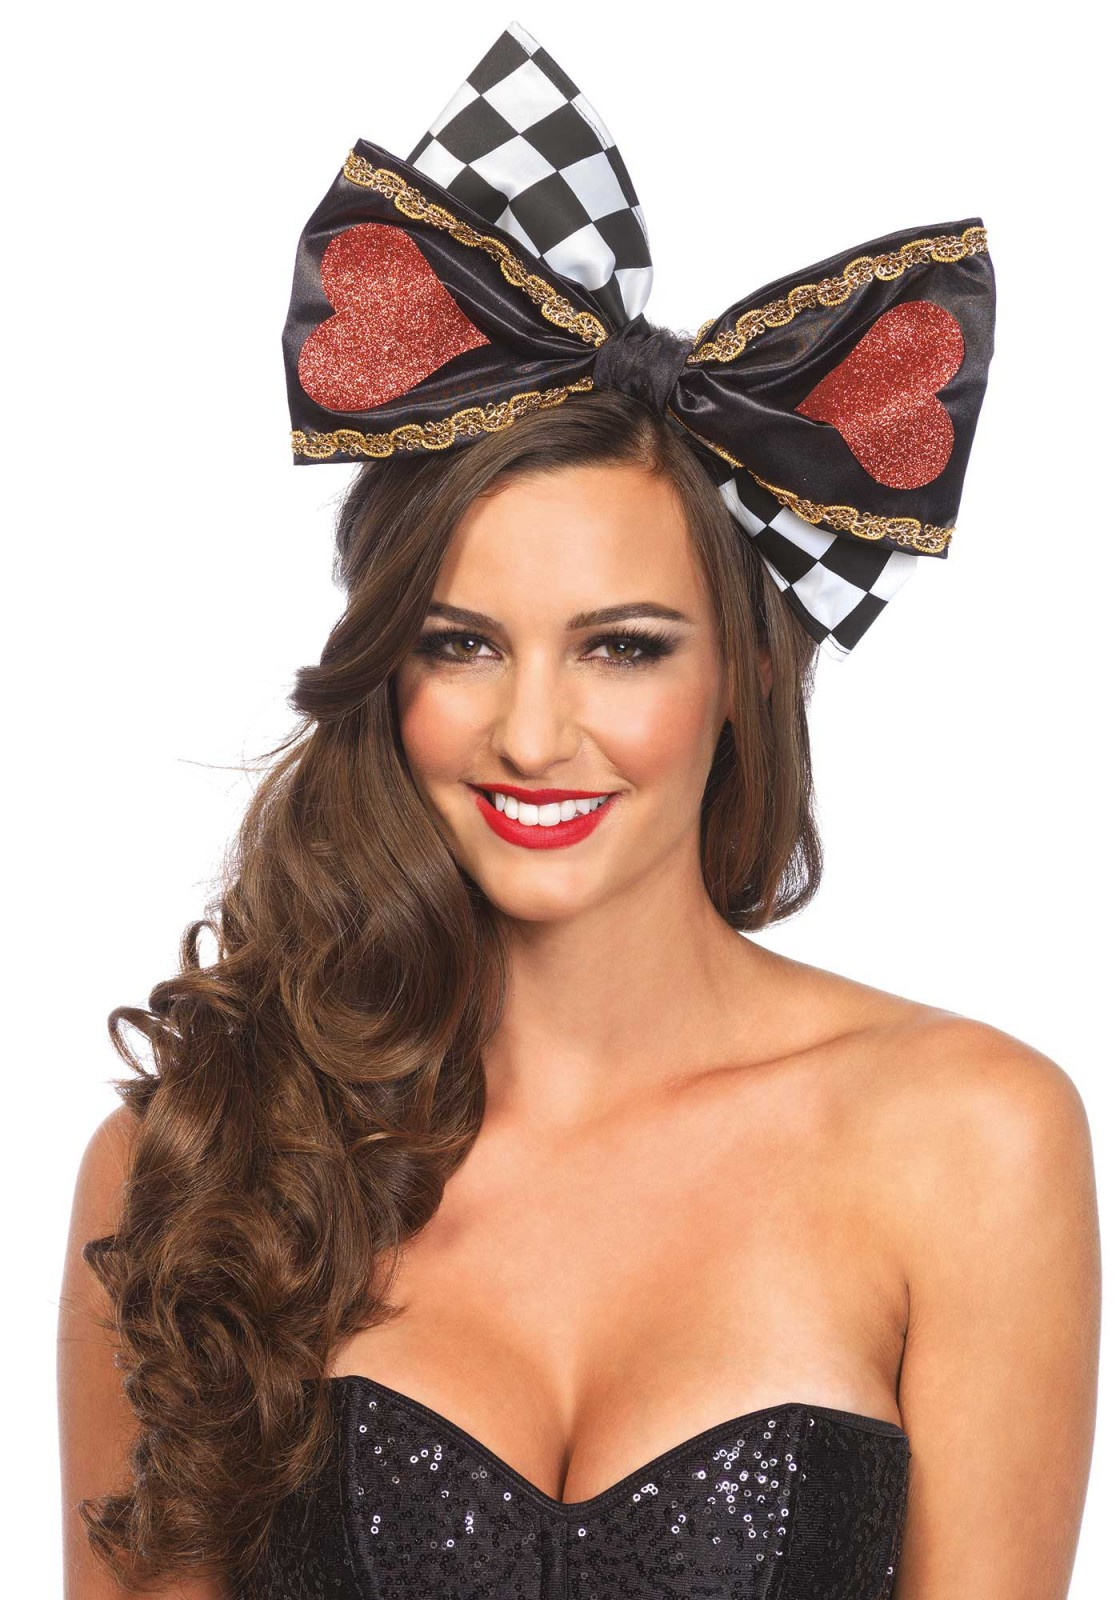 This oversized wonderland bow with glitter can be worn in different ways. It can be worn as a headband but the bow can also be pinned on clothing with a safety pin. This bow includes a headband and safety pin as well.